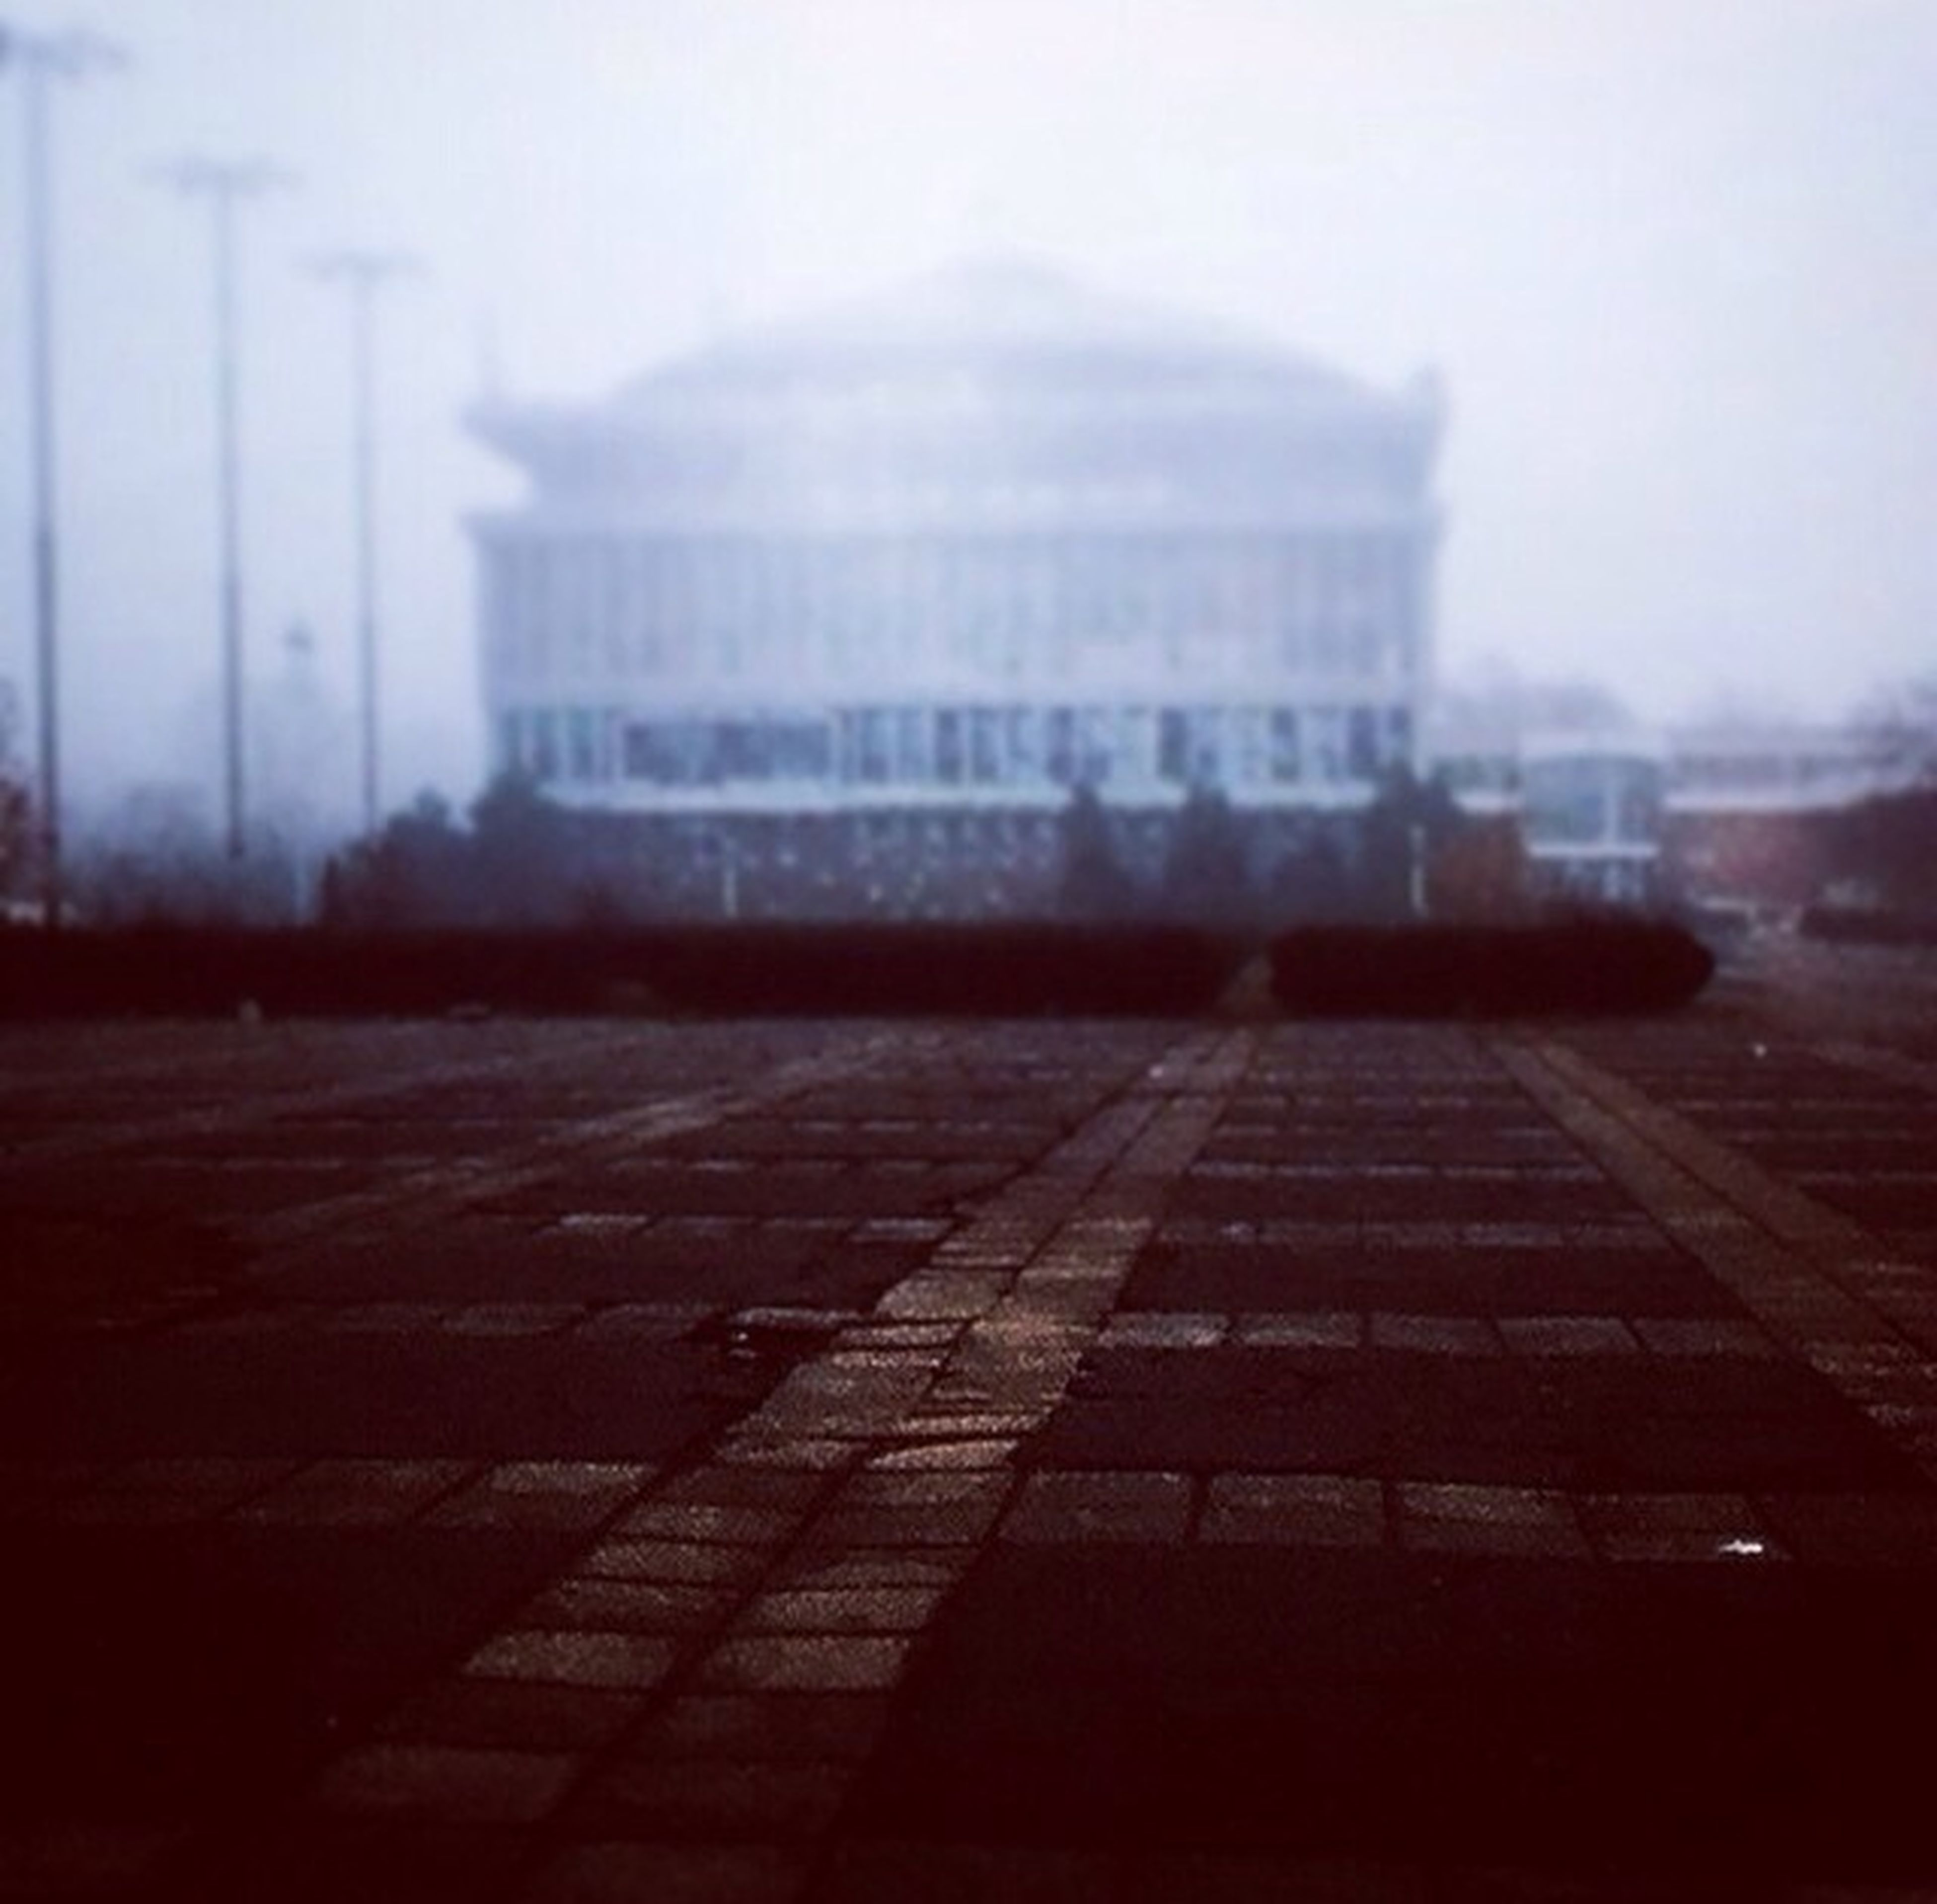 architecture, built structure, building exterior, transportation, city, the way forward, street, sky, surface level, road, empty, fog, outdoors, weather, no people, day, focus on foreground, diminishing perspective, building, selective focus